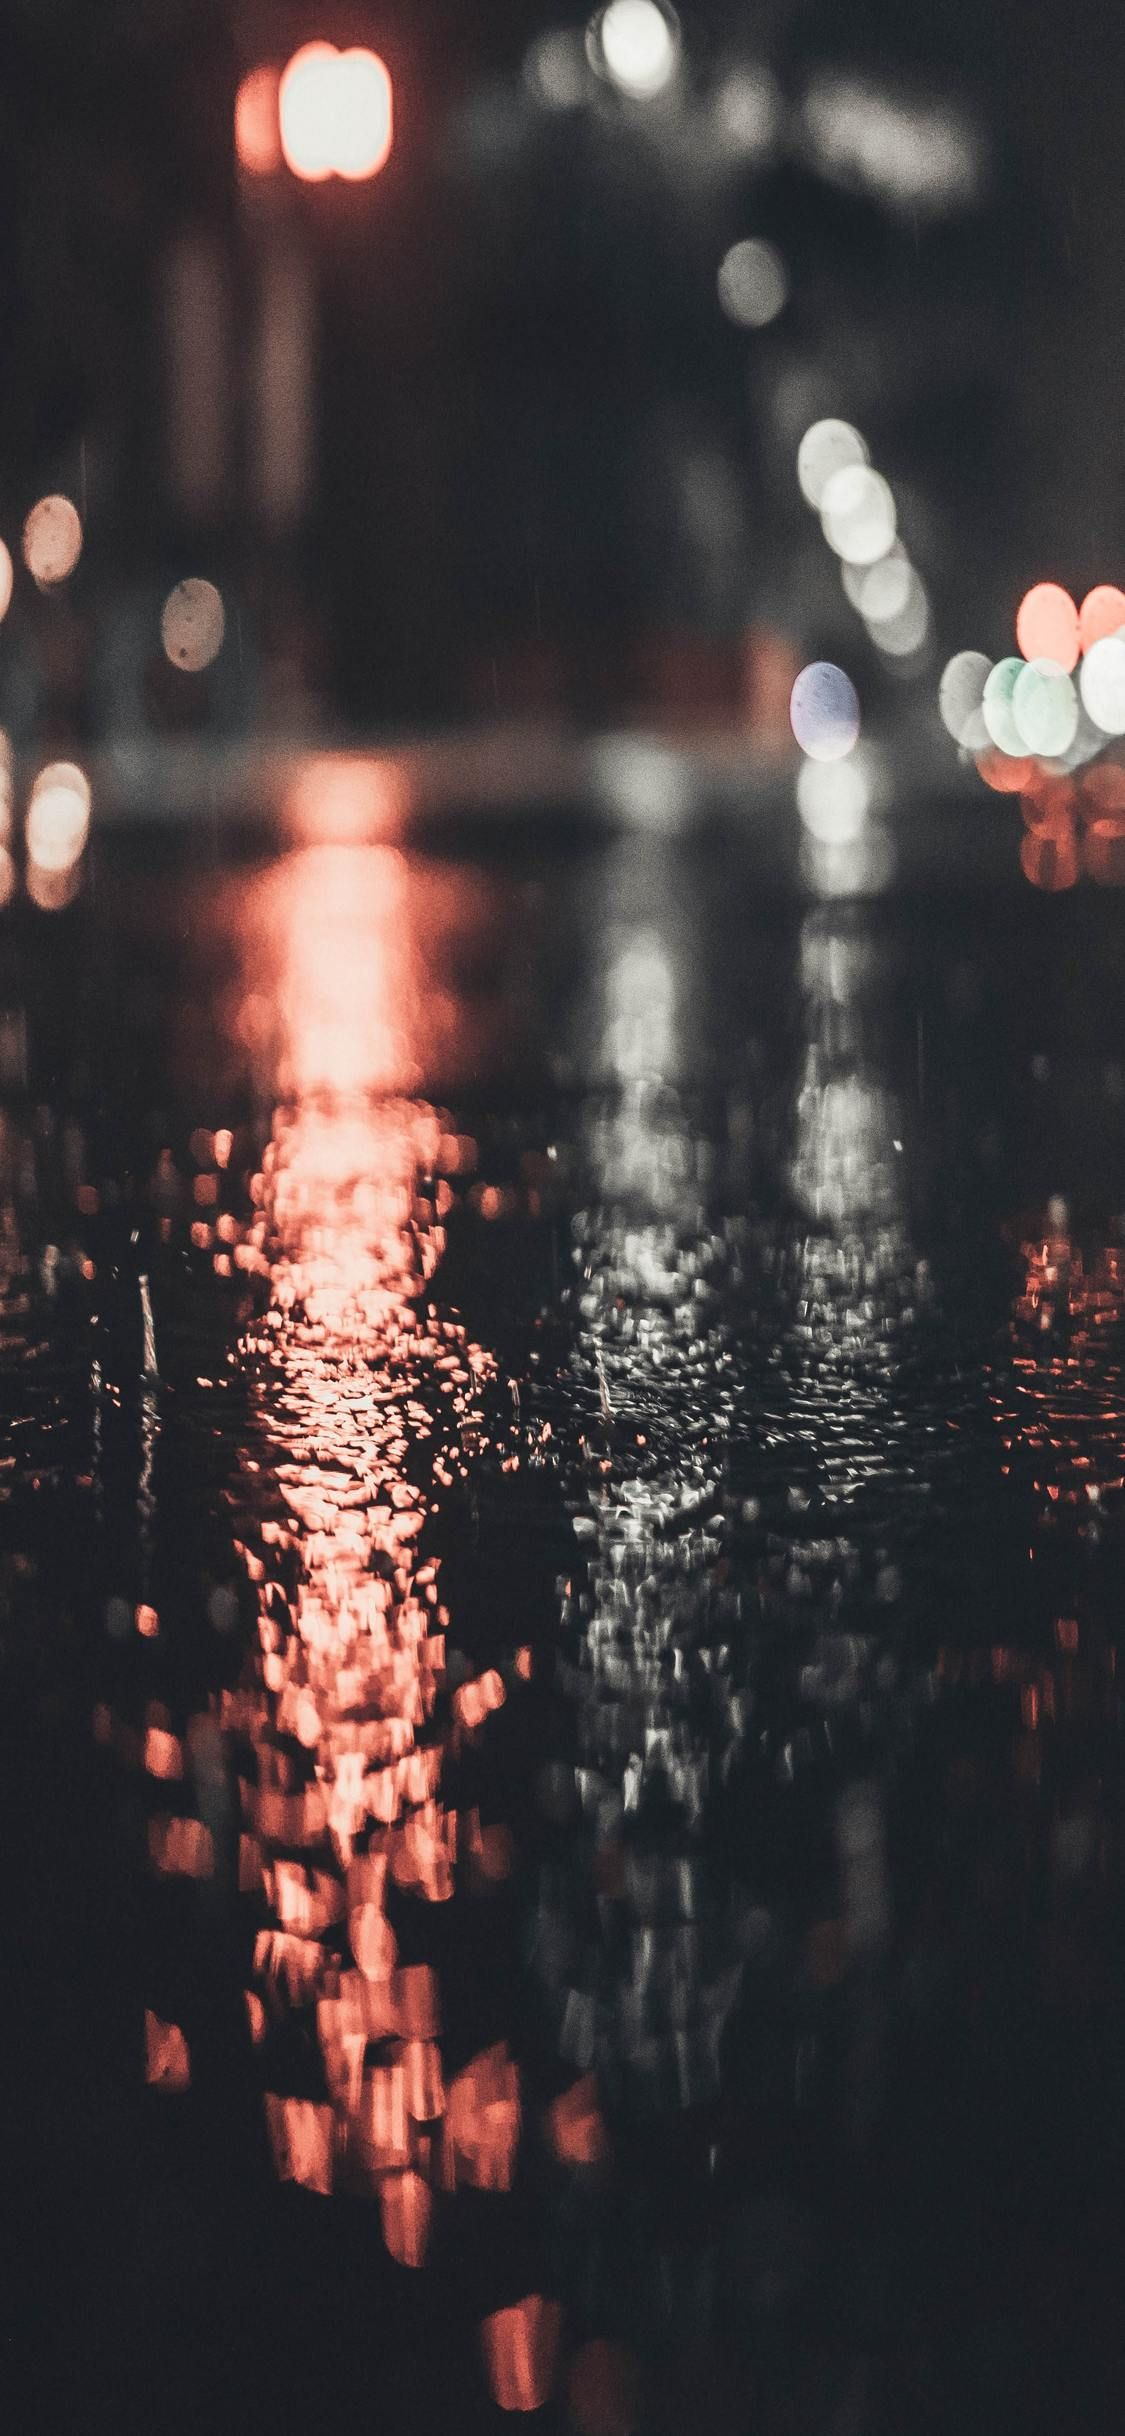 Bokeh Background Hd Image In 2020 Iphone Backgrounds Nature Rain Wallpapers Bokeh Background